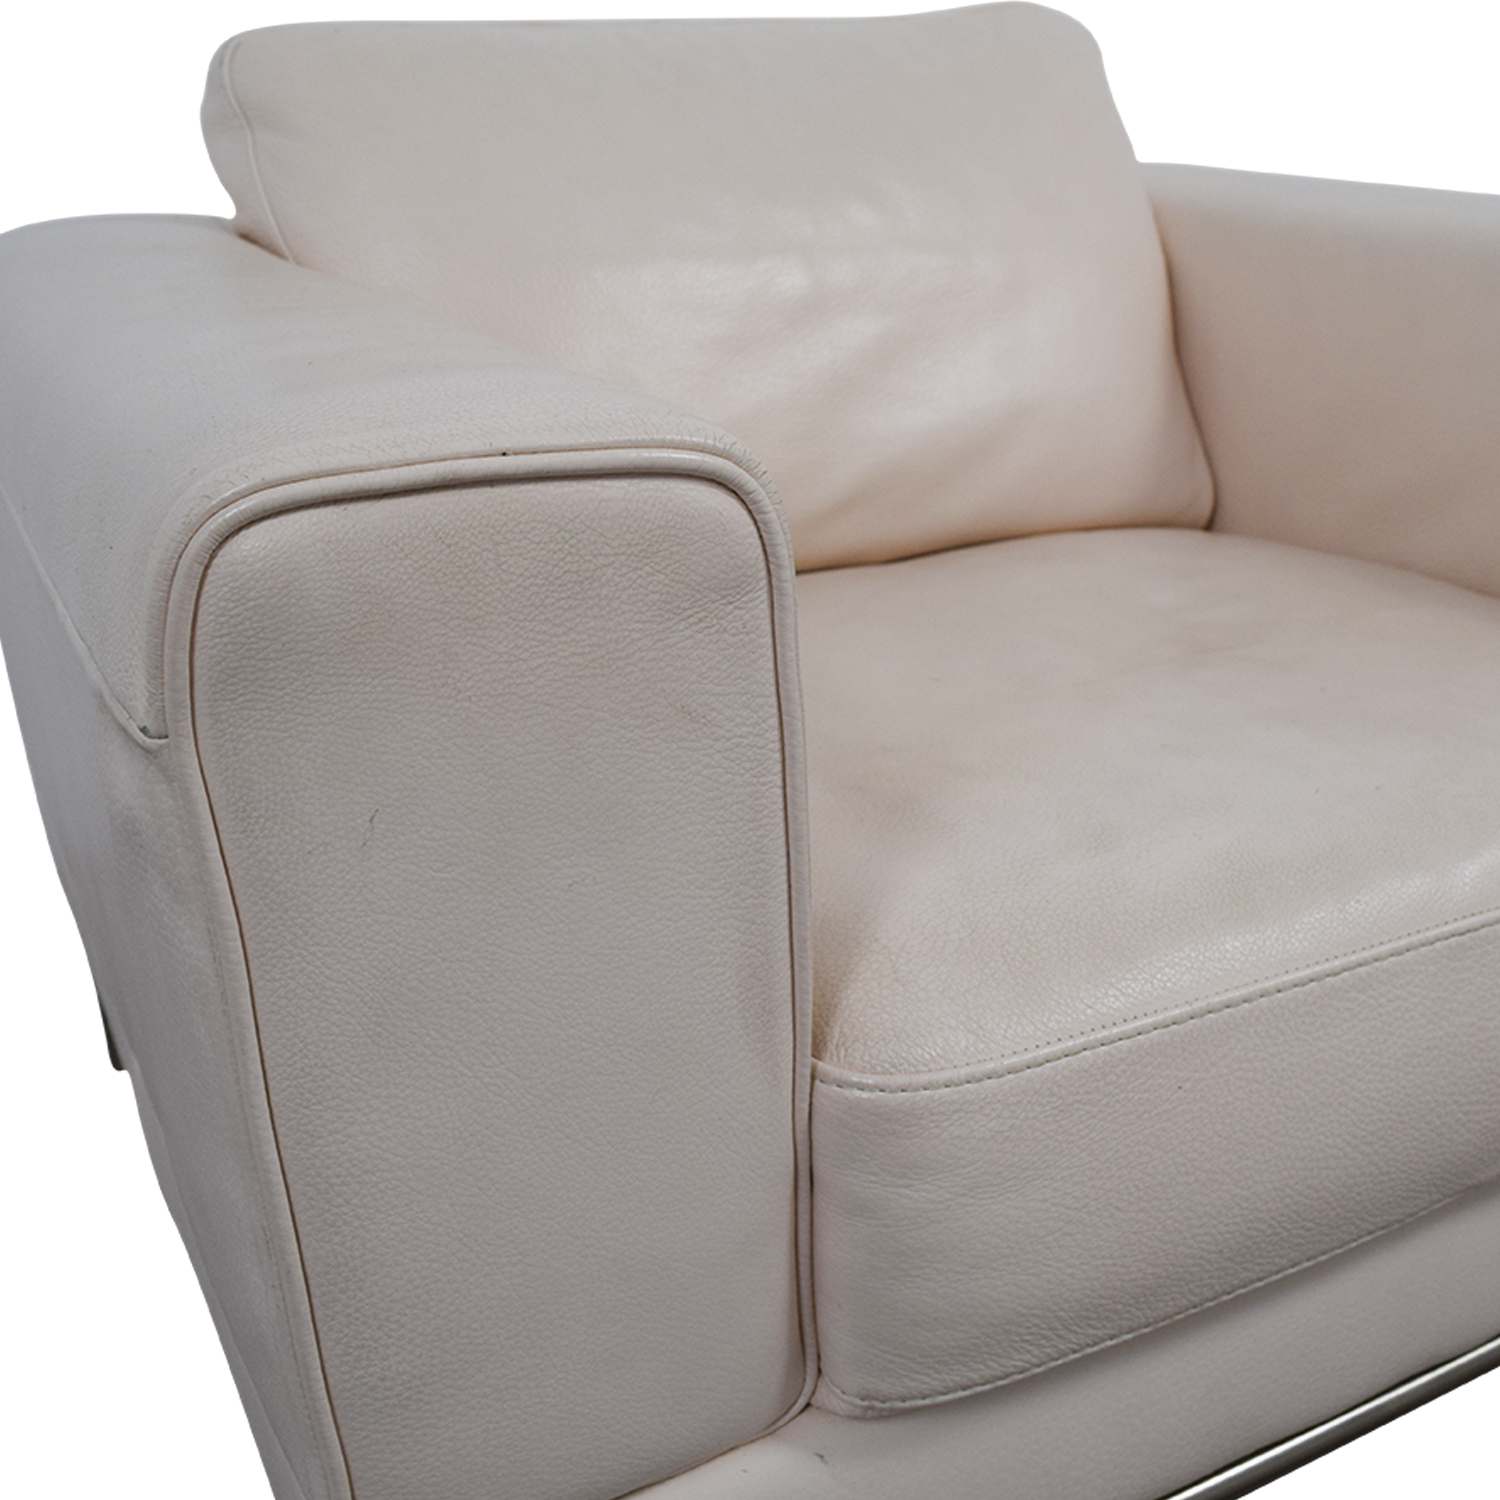 56% OFF White Leather Chair Chairs